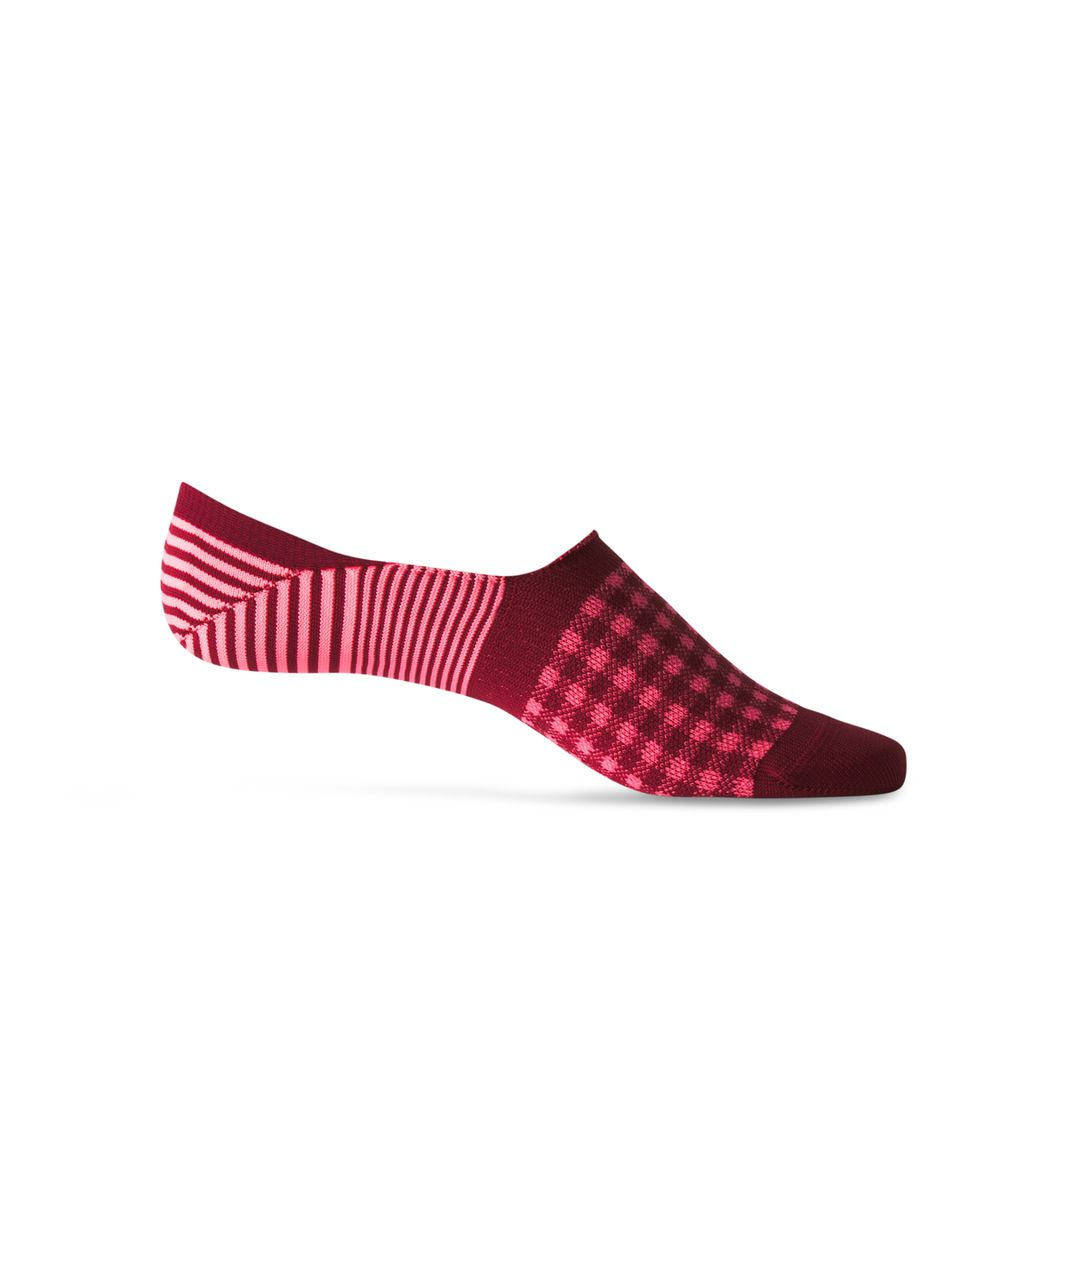 Lululemon Secret Sock - Rosewood / Flash Light